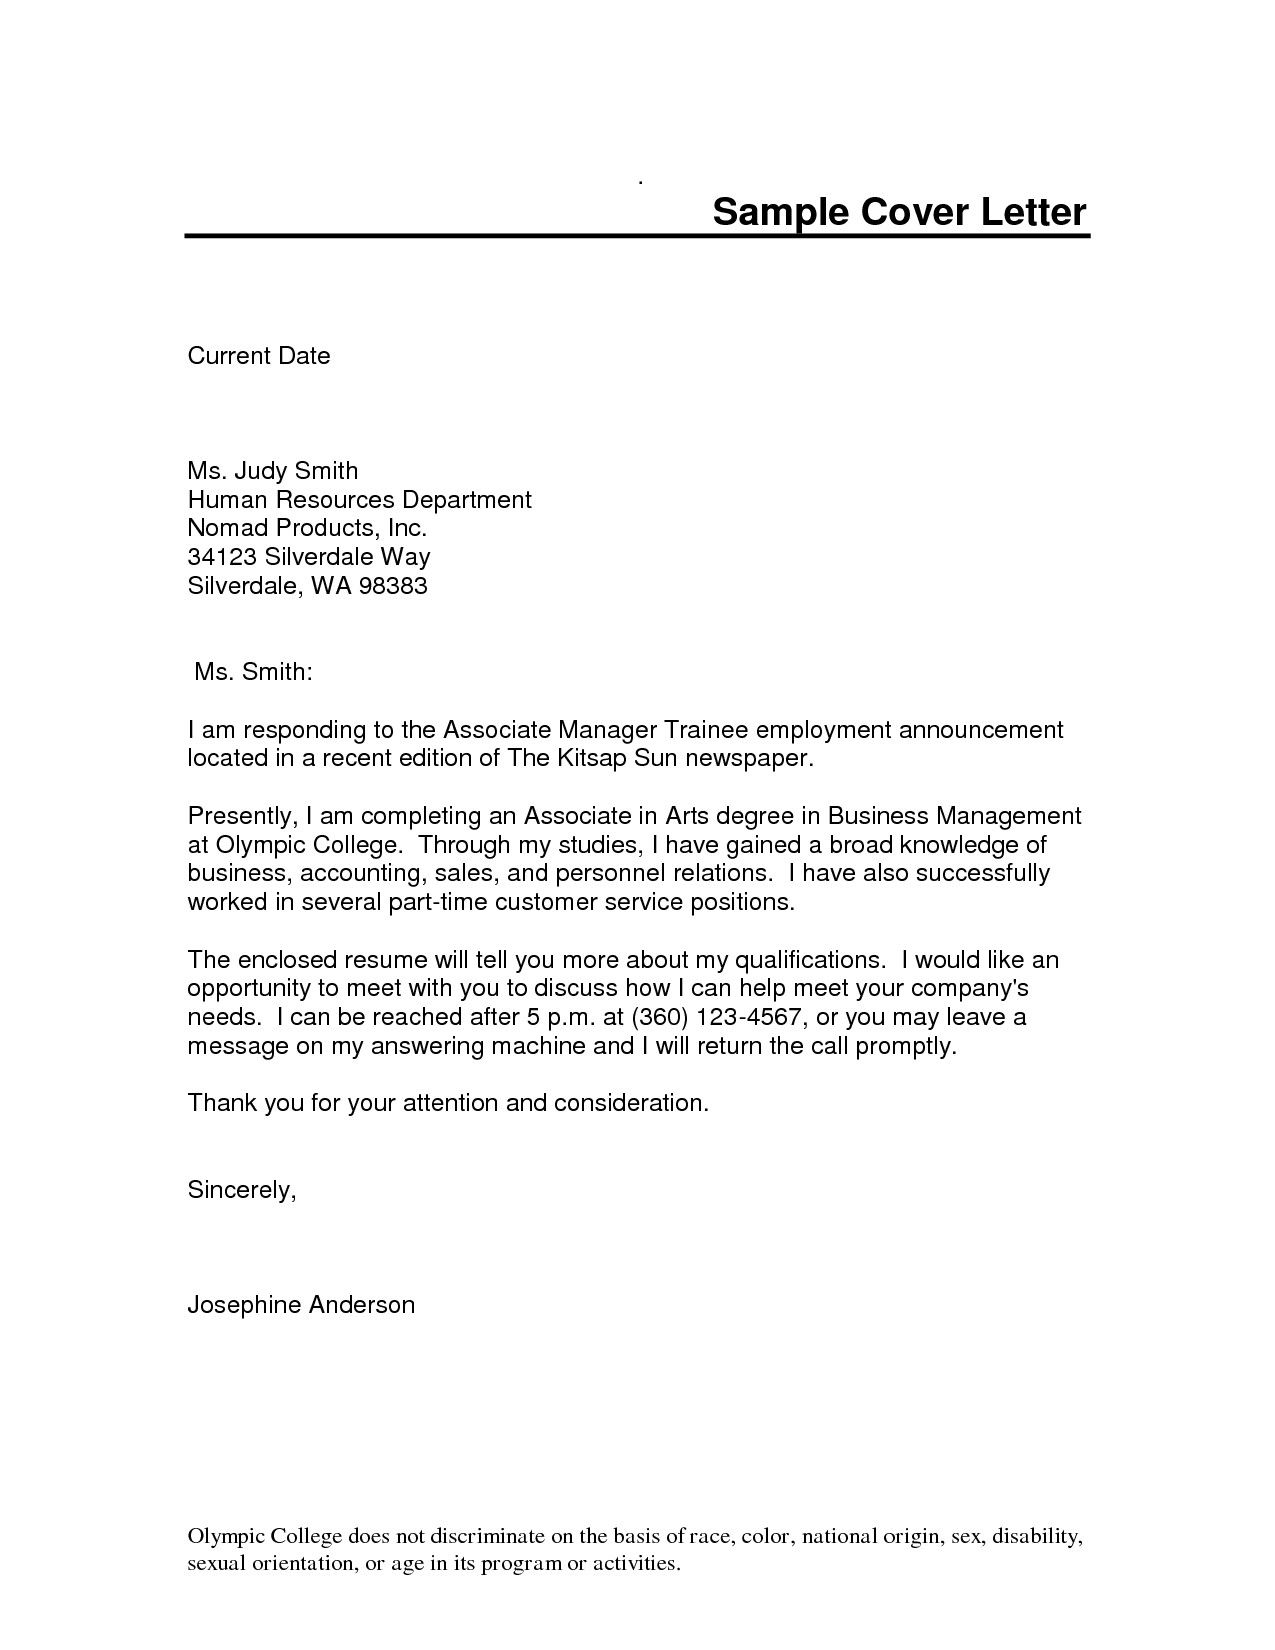 Free Cover Letter Template Microsoft Word Whats